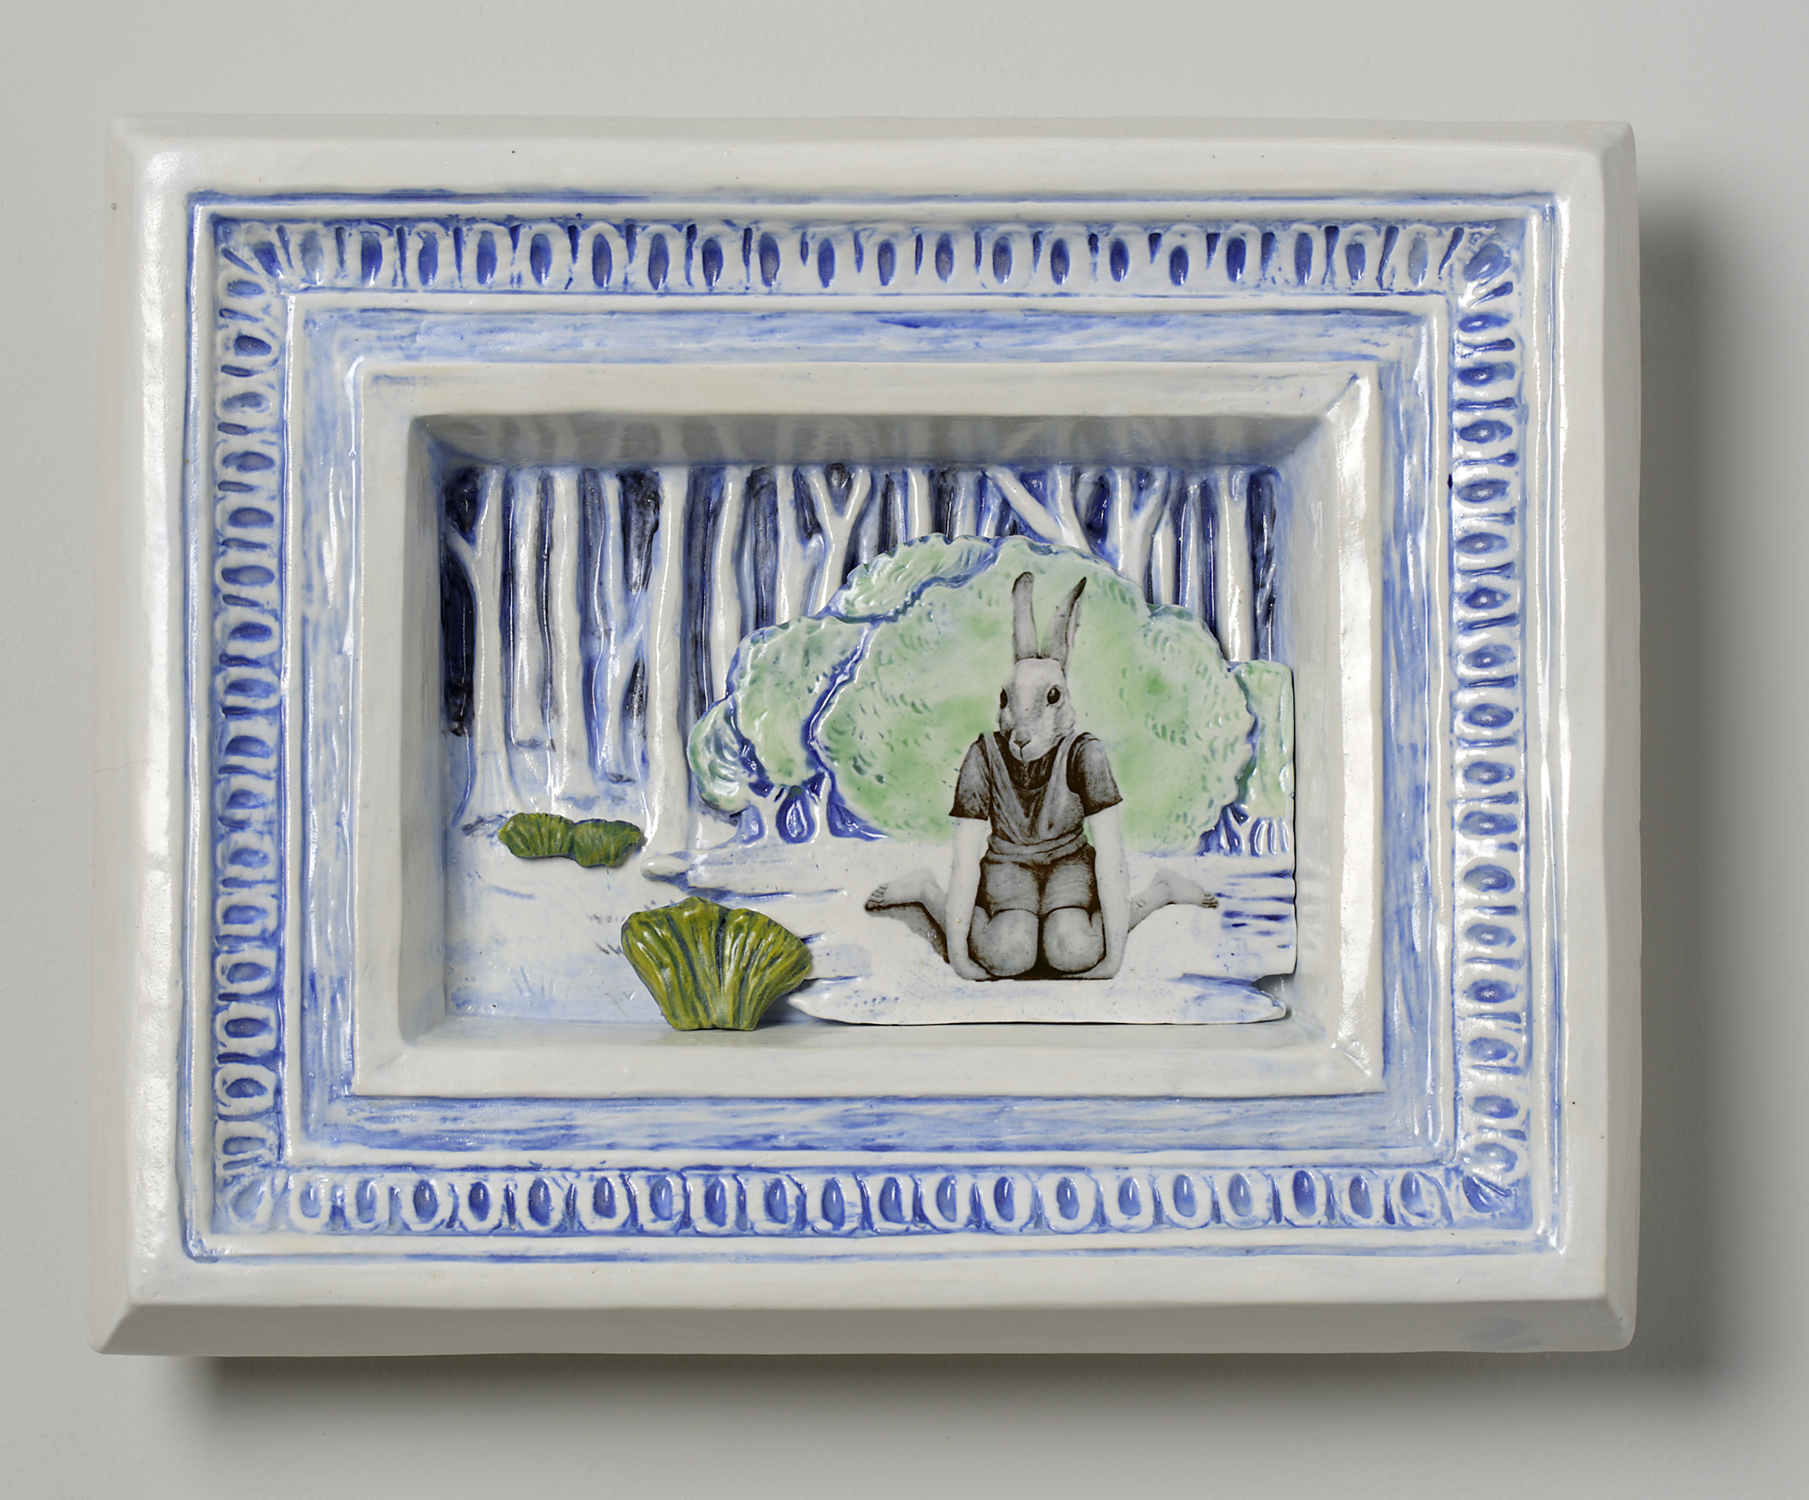 Rabbit headed girl sitting in front of trees and bushes, relief and decals in ceramics